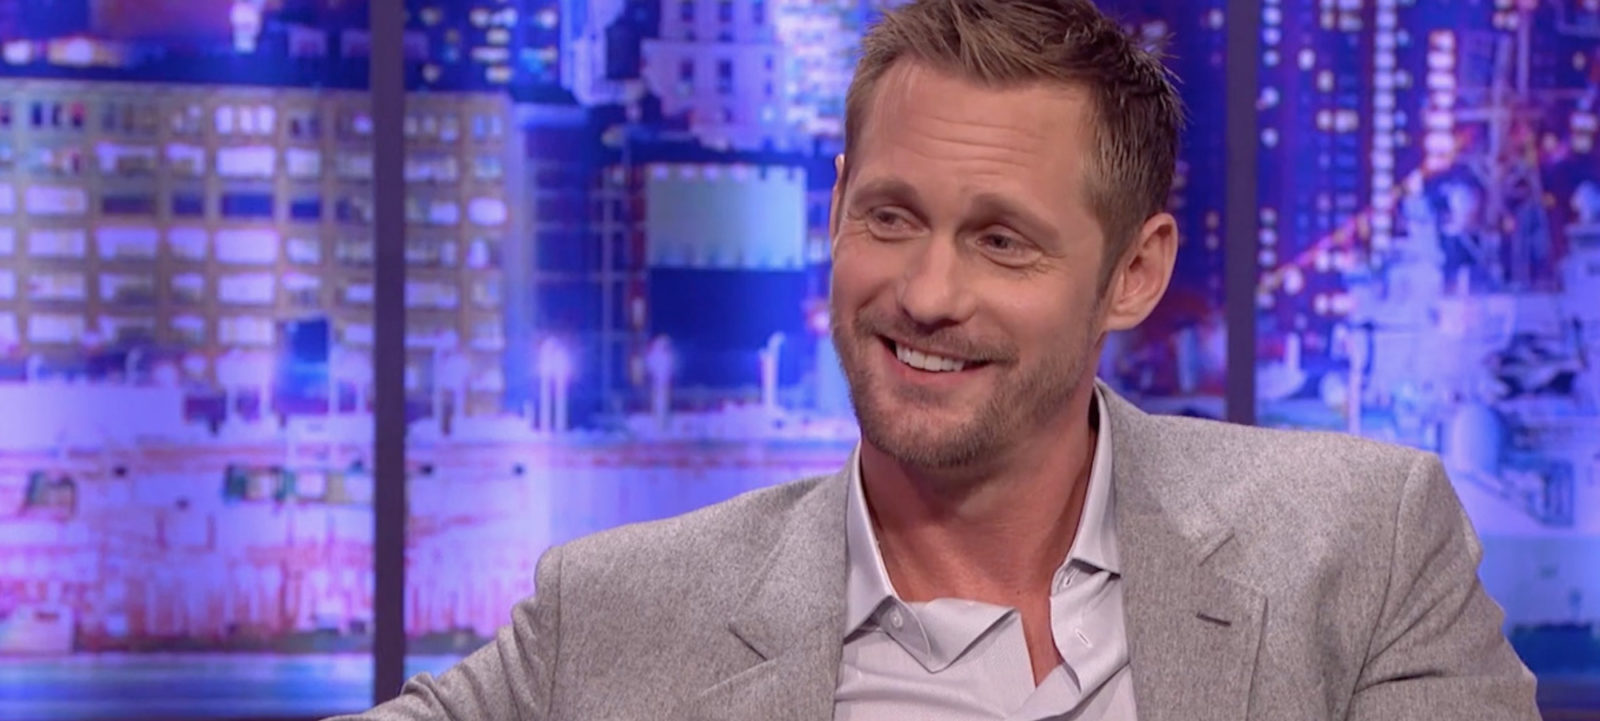 Alexander Skarsgard on The Jonathan Ross Show on October 1, 2016